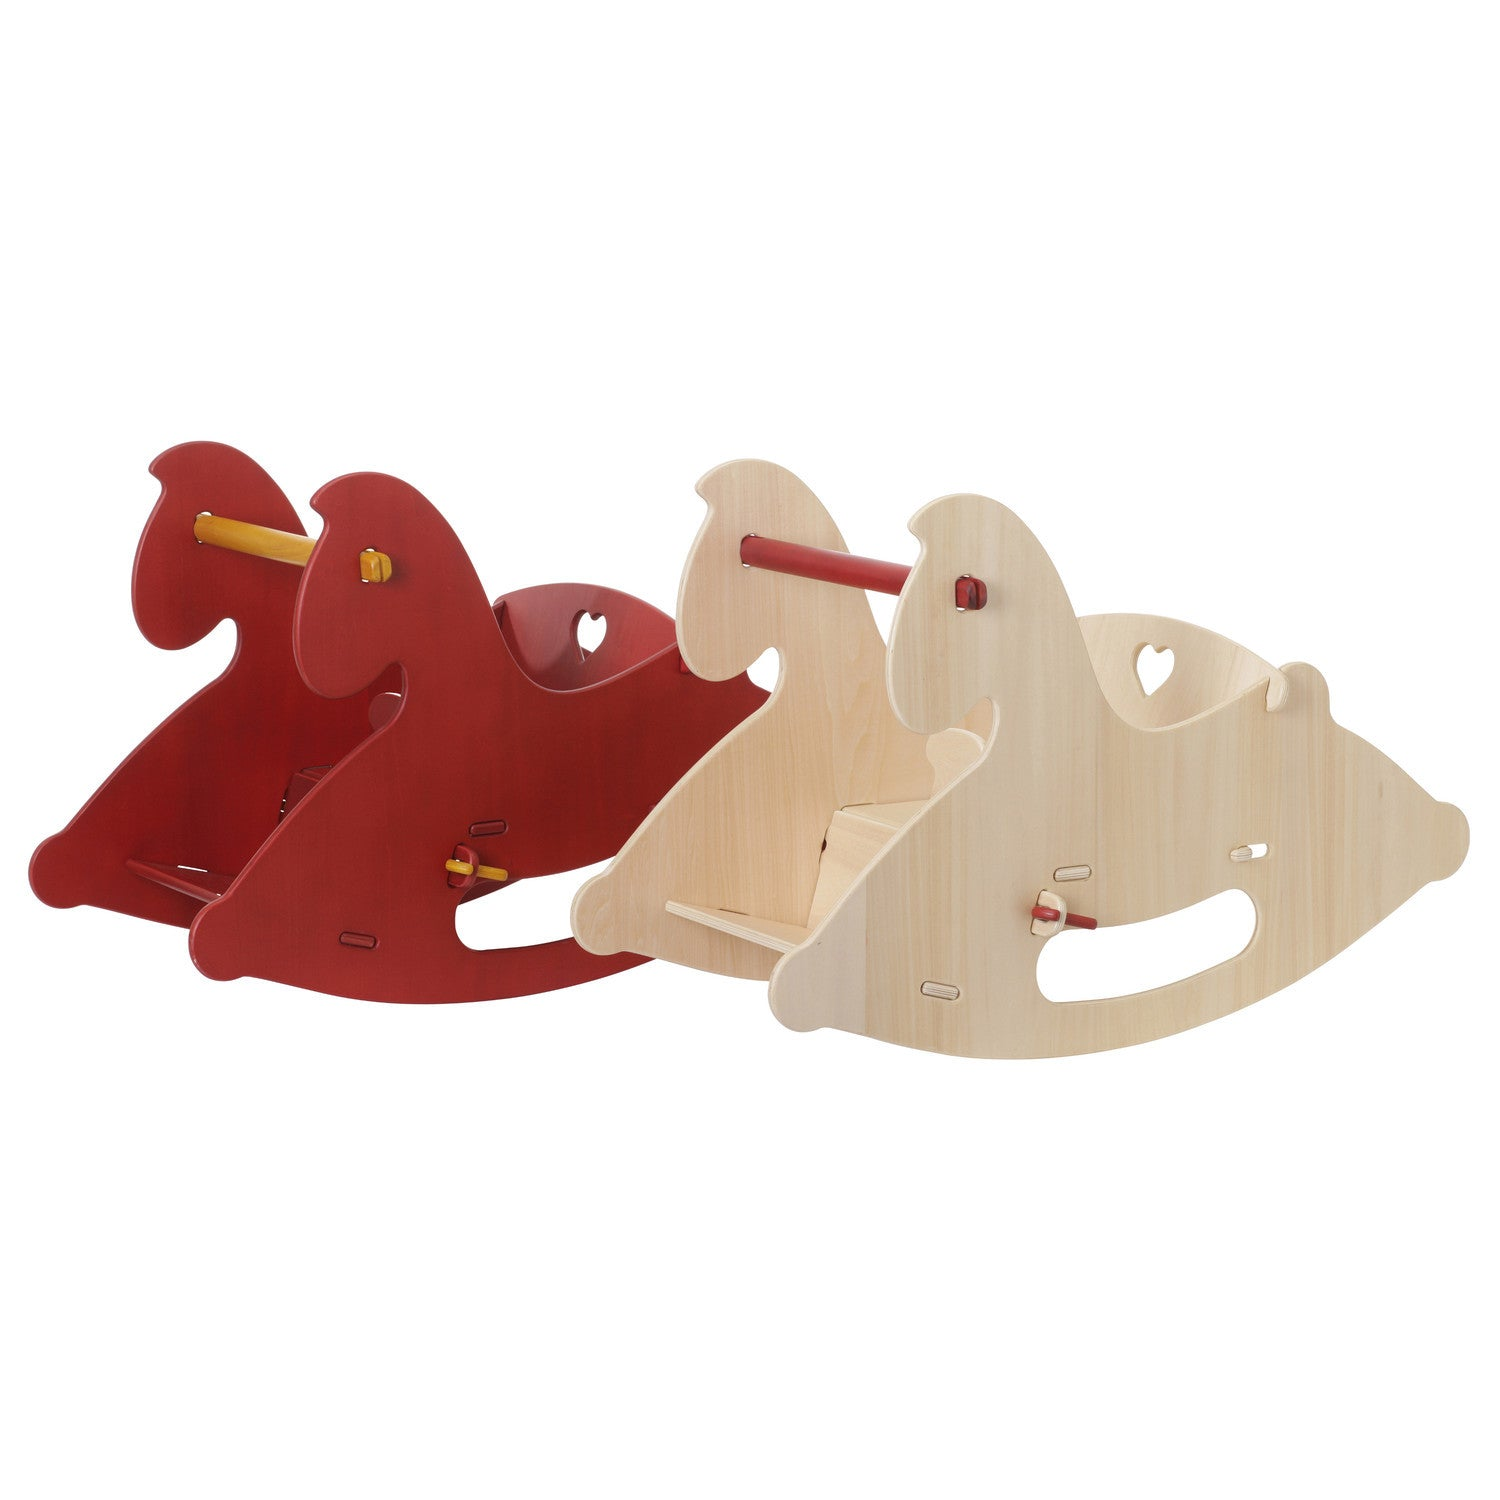 Moover Wooden Rocking Horse Moover Toys Hobby Horses at Little Earth Nest Eco Shop